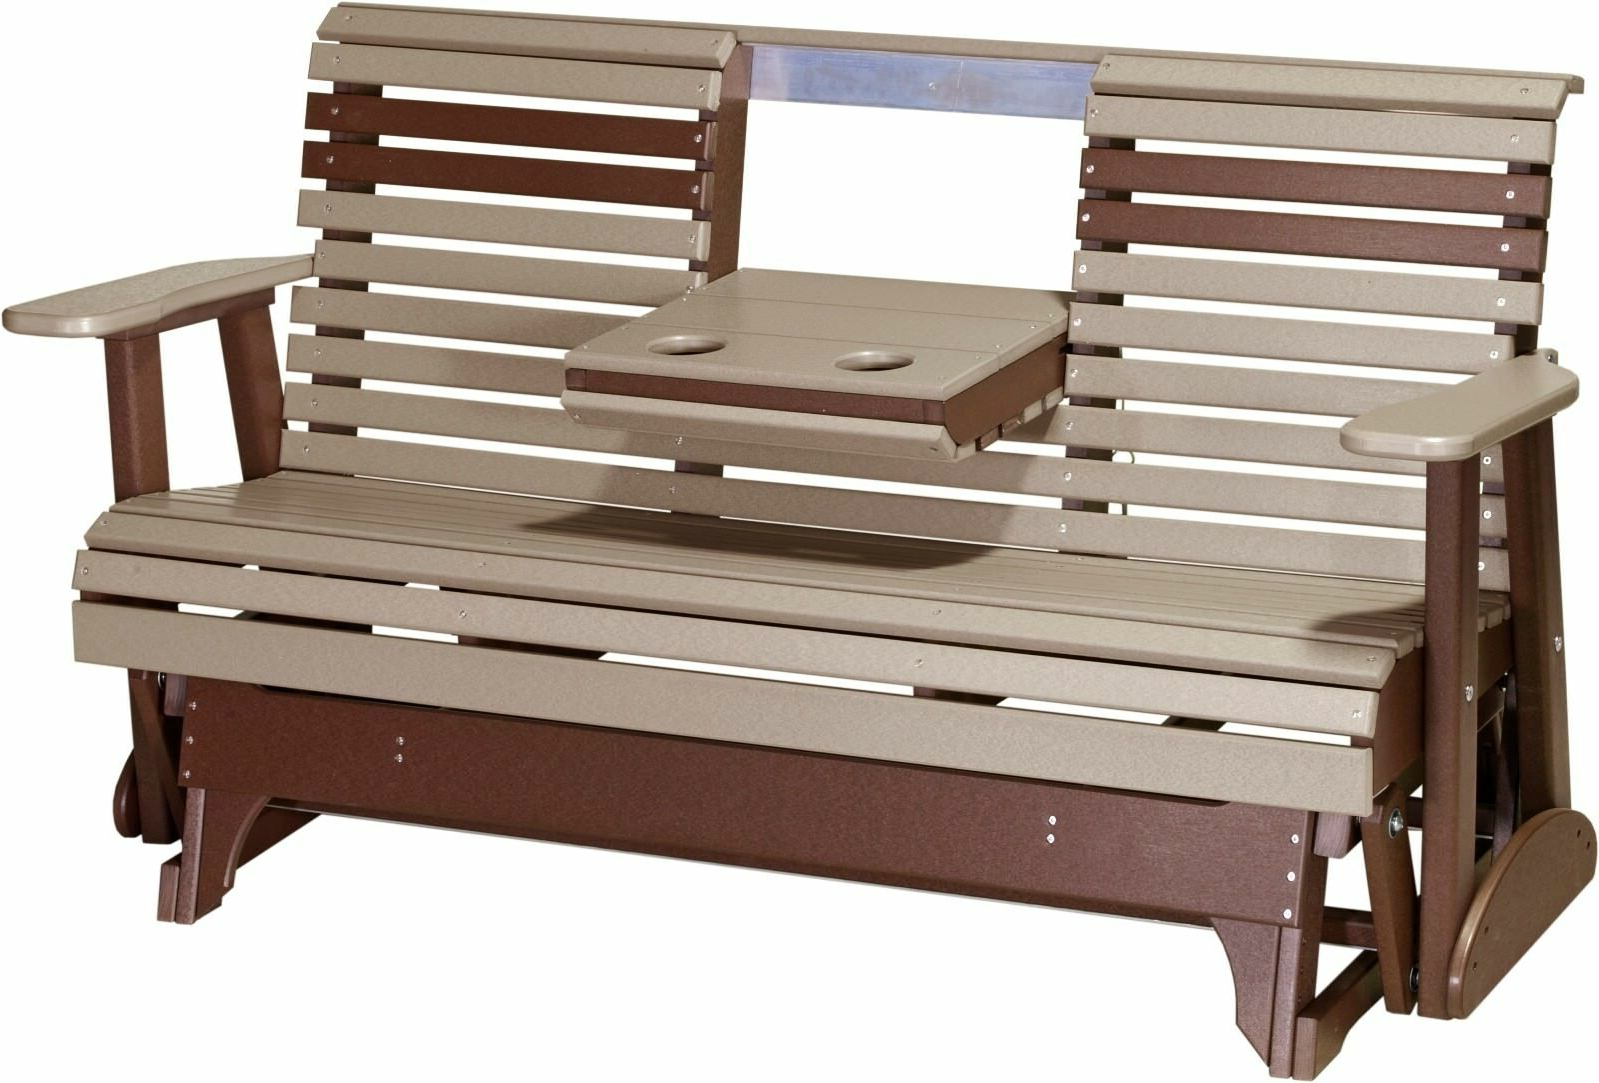 Center Table Double Glider Benches Intended For Well Known Outdoor Poly Lumber 5 Ft Rollback Glider *weatherwood & Brown* Recycled Plastic (View 21 of 30)